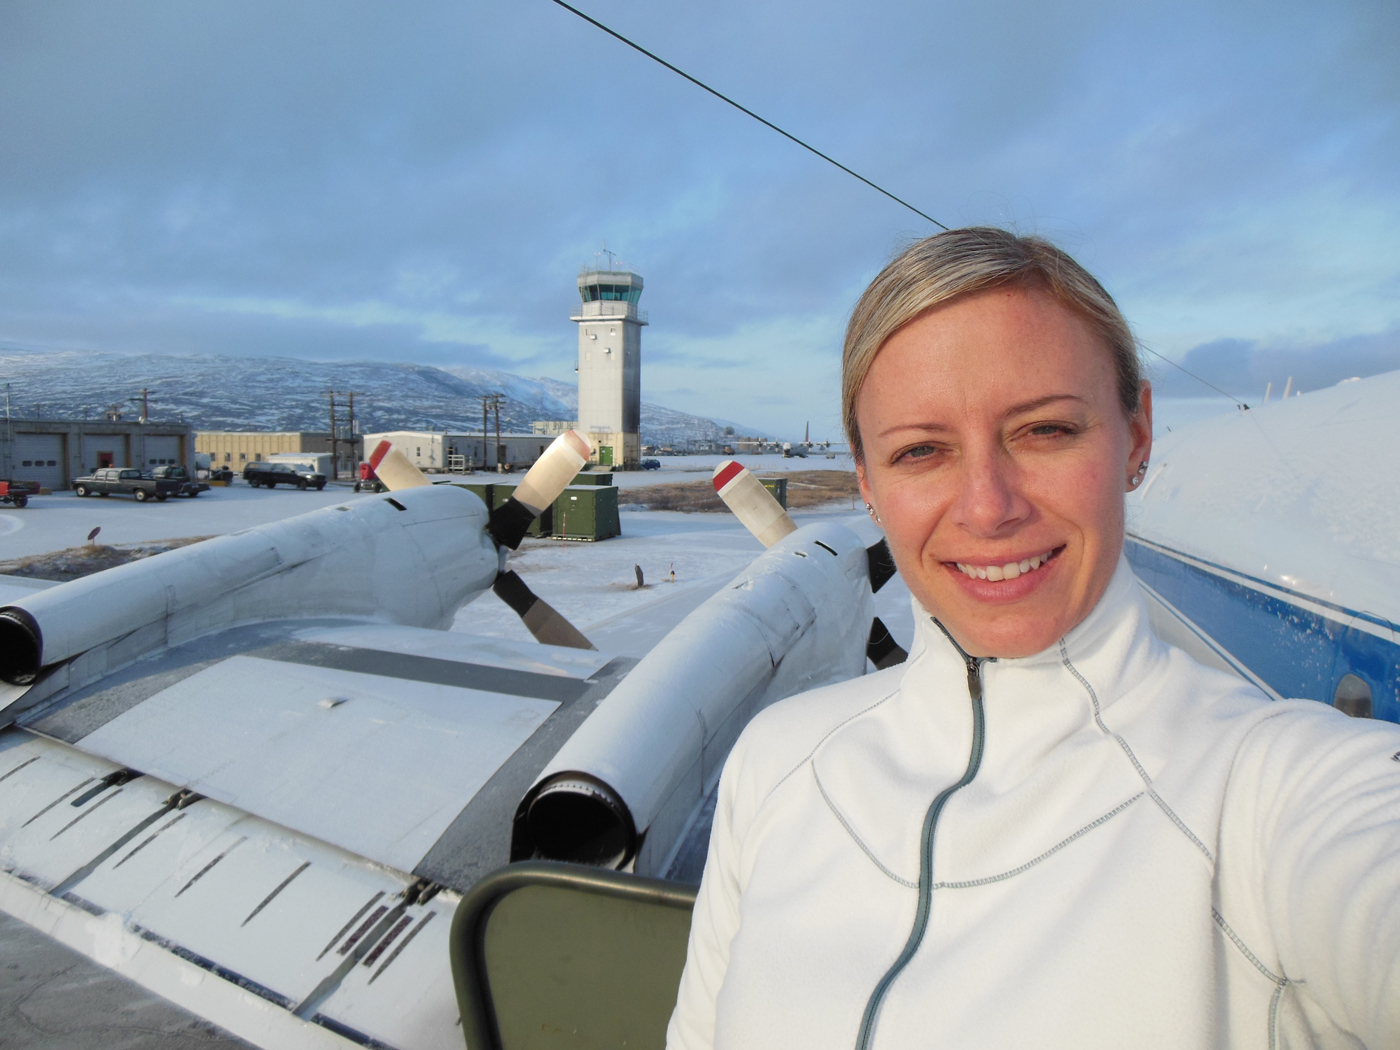 Christy Hansen in Kanger, Greenland, after one of Operation IceBridge's science flights. Behind her is the air traffic control tower, as well as the P-3B propellers.